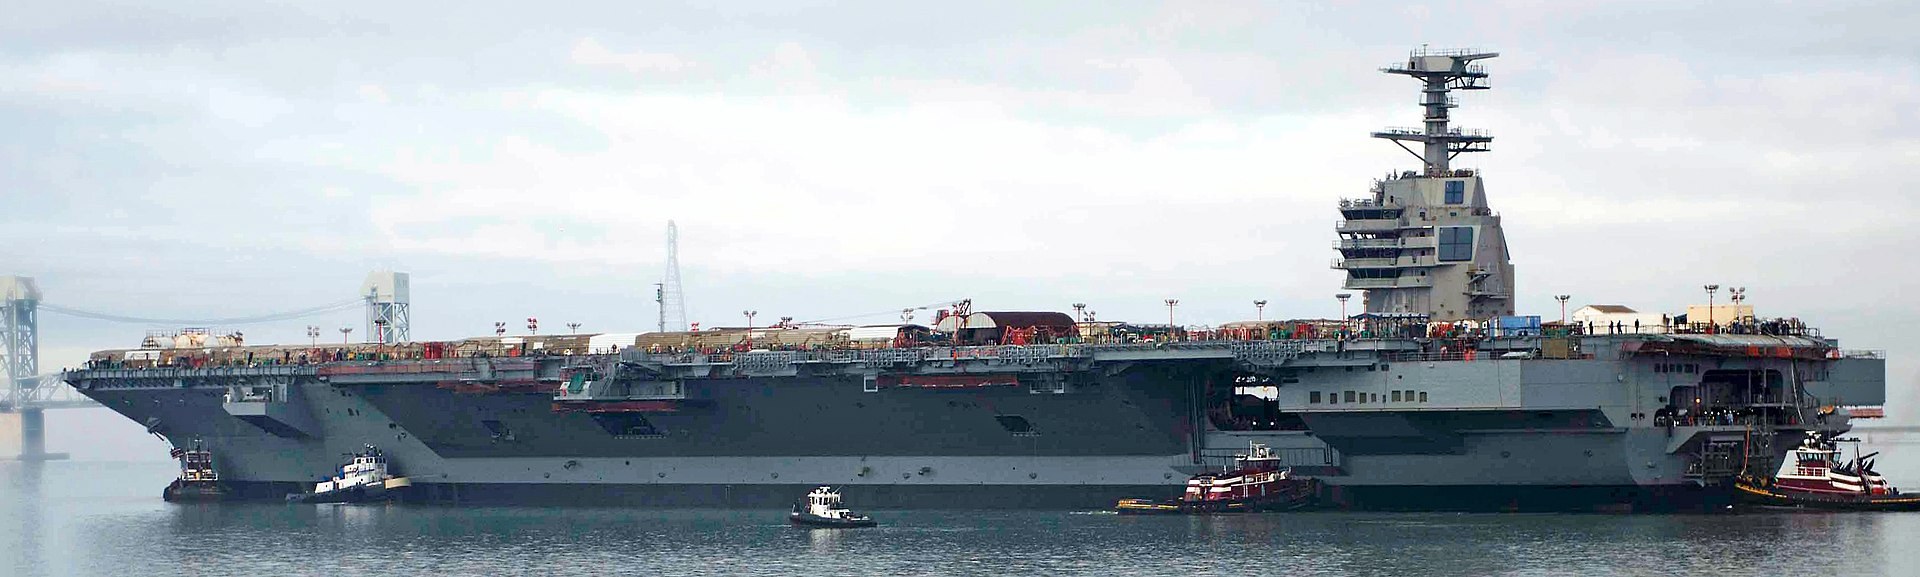 1920px-USS_Gerald_R._Ford_%28CVN-78%29_on_the_James_River_in_2013.JPG